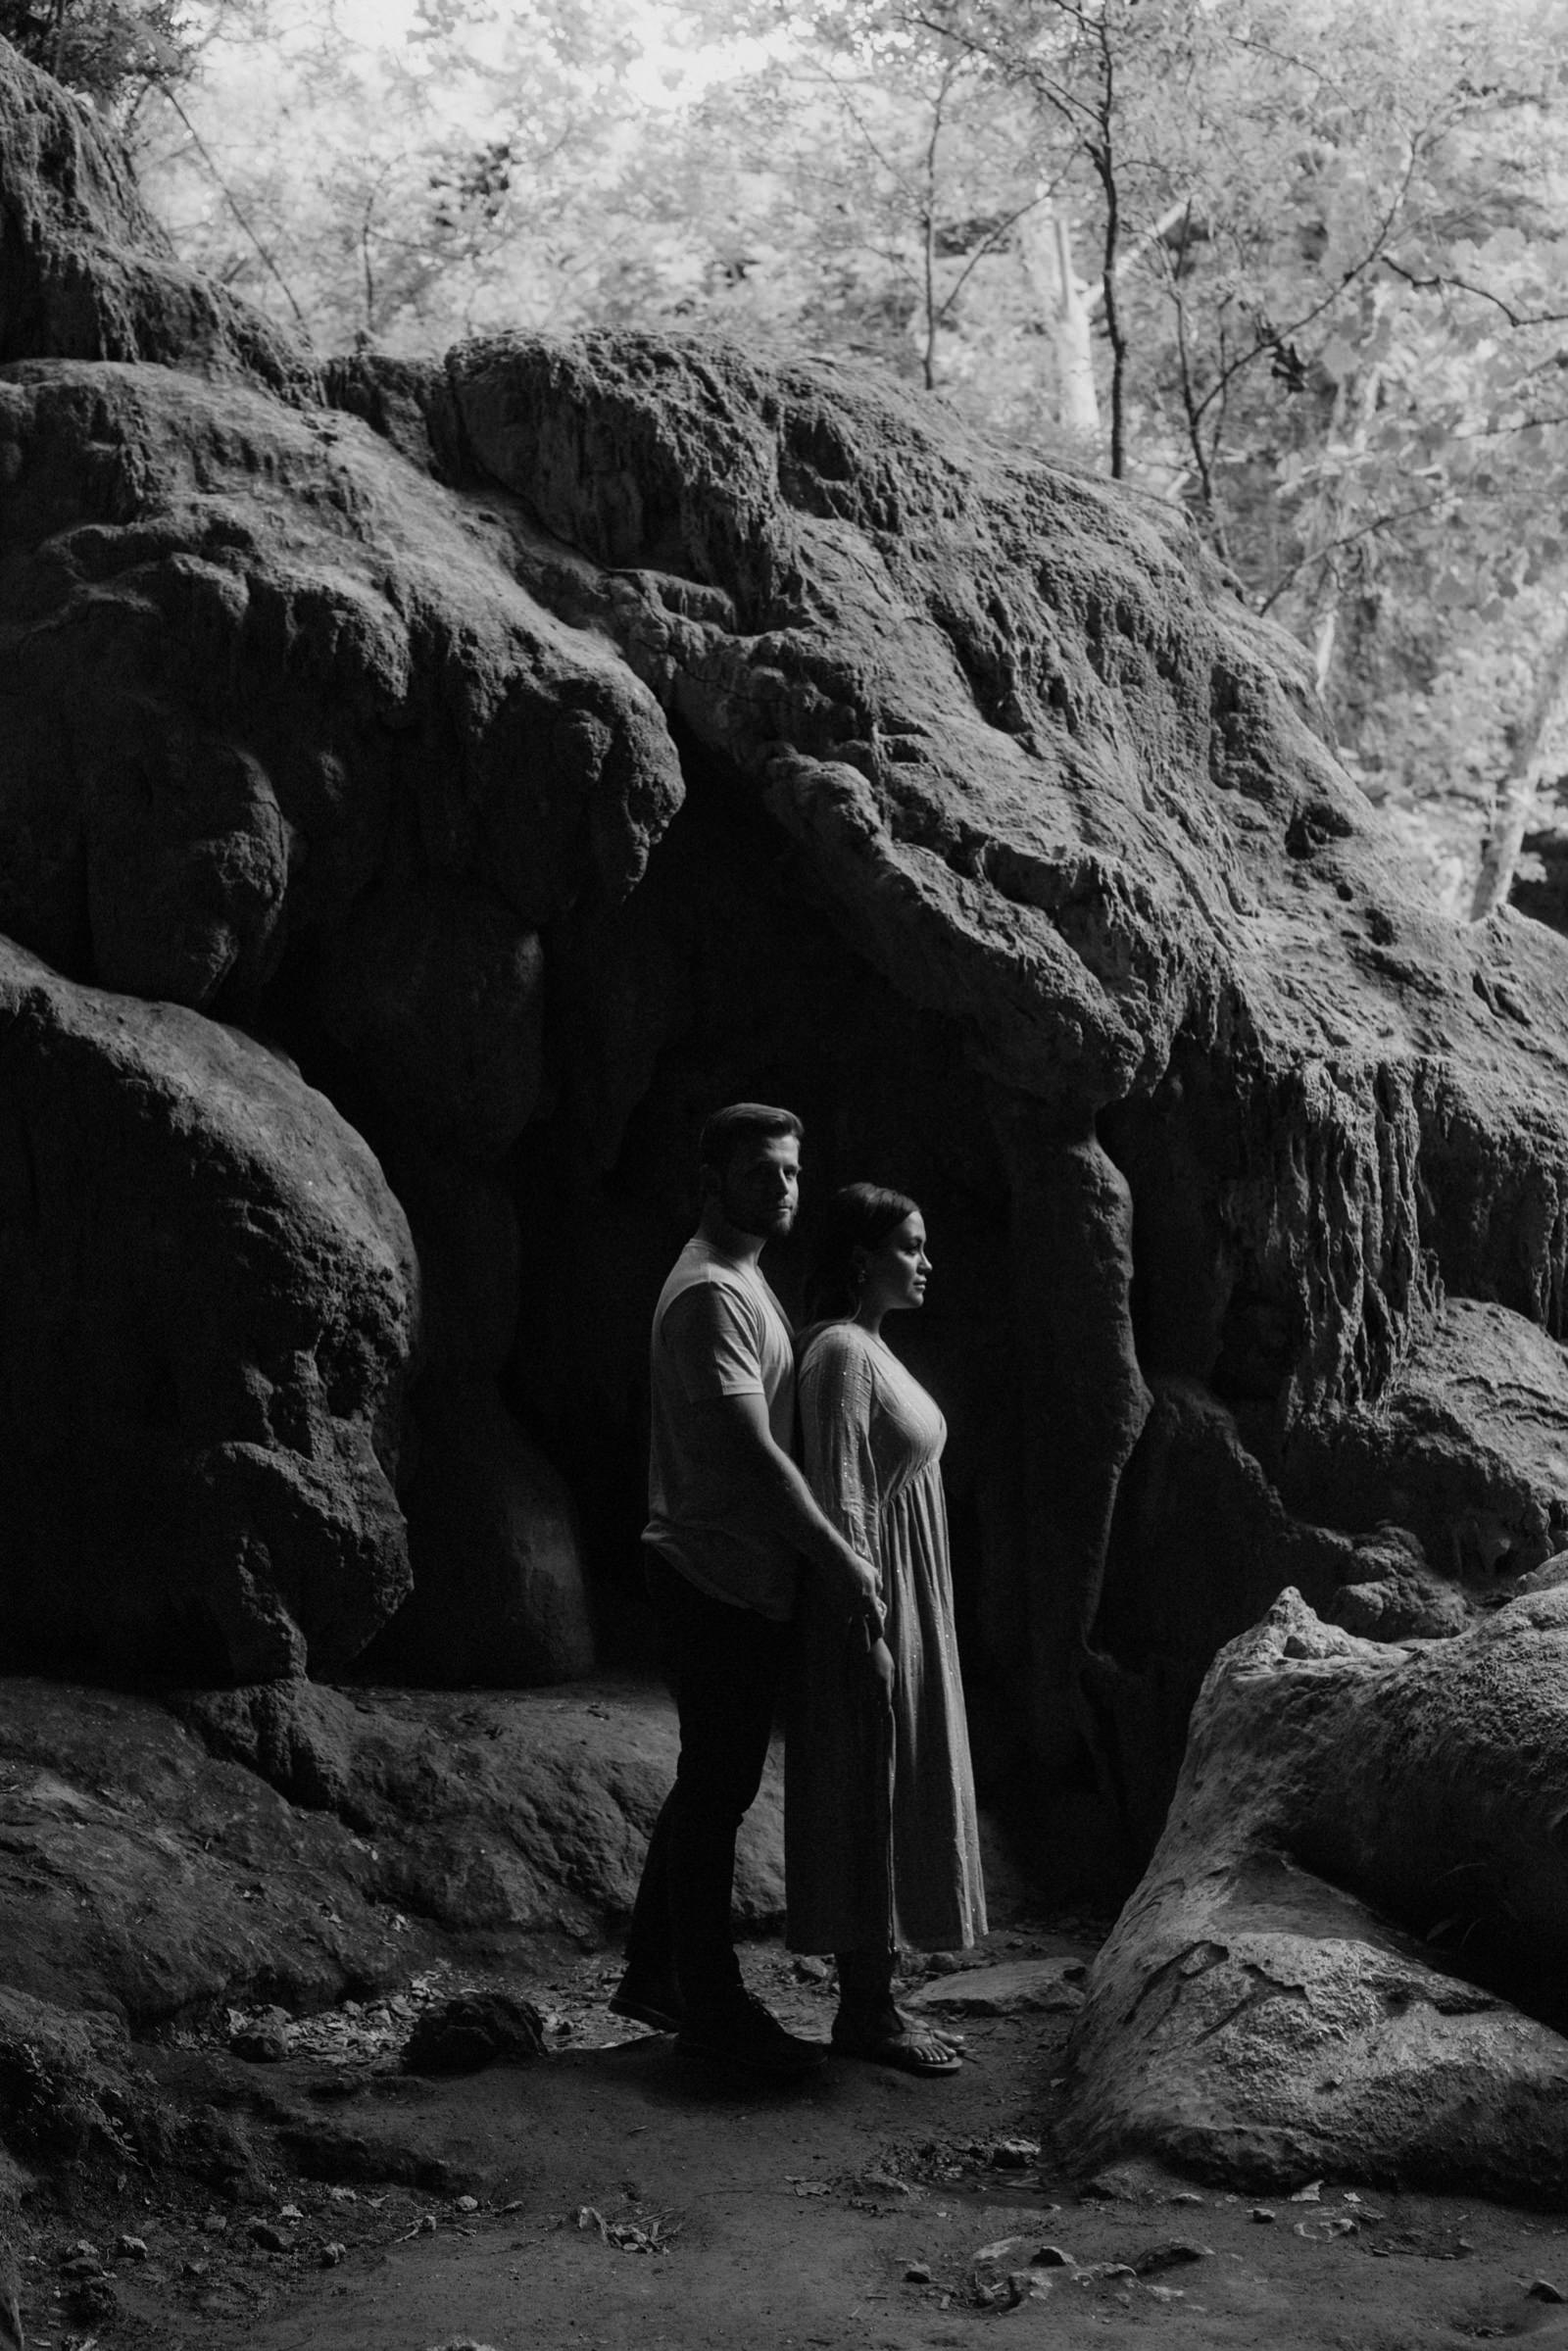 Black and white engagement photography in a remote Texas cave with the couple rim lit